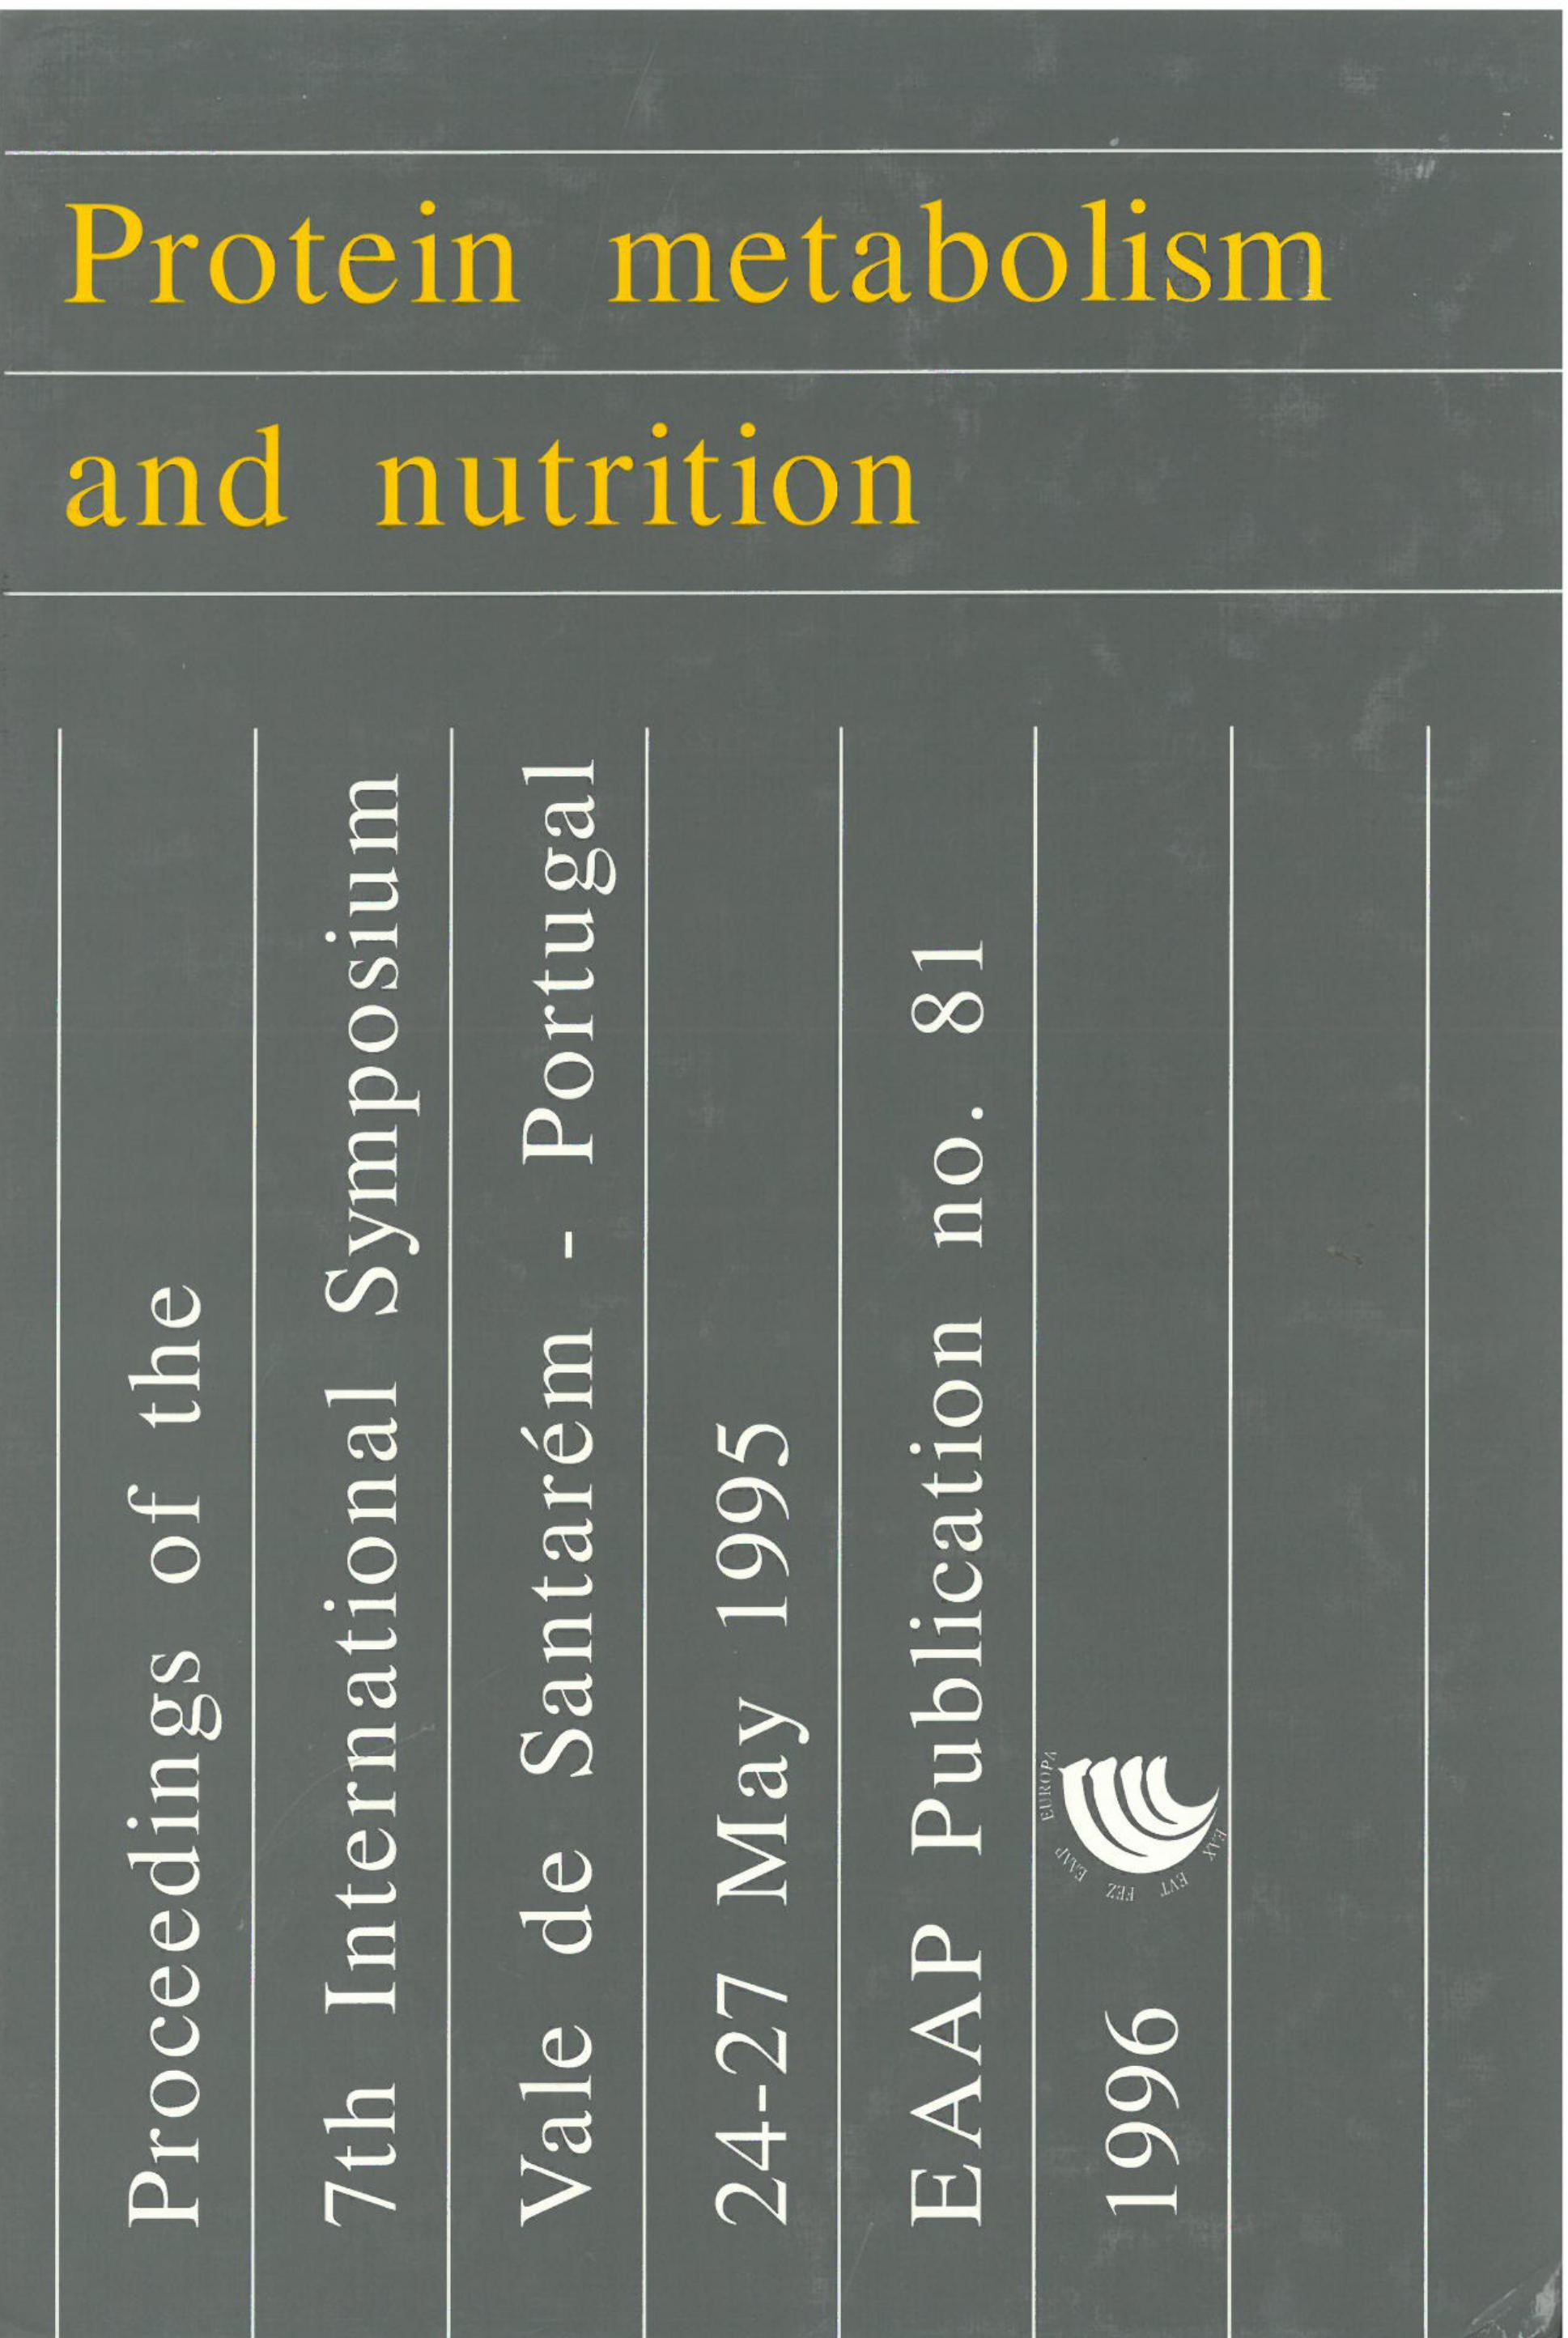 Protein metabolism and nutrition